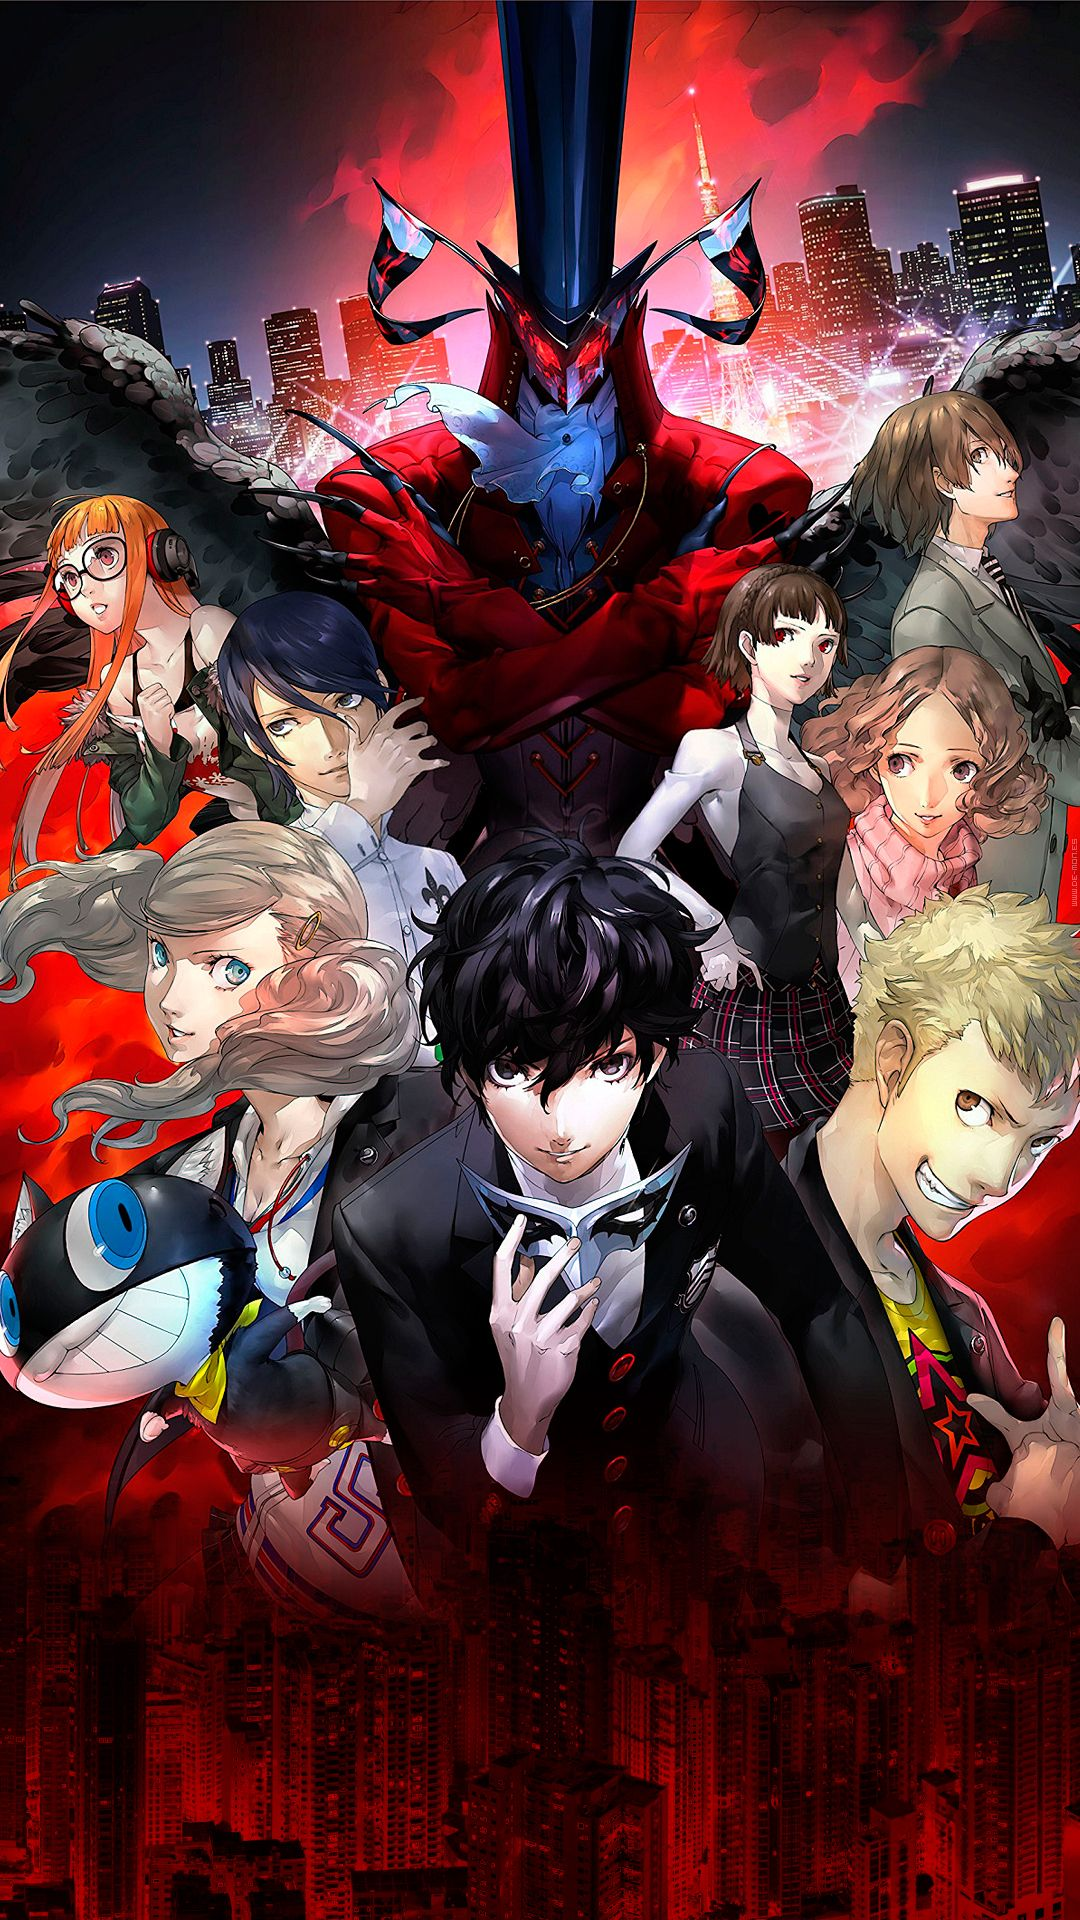 Persona 5 Wallpaper Iphone In 2020 Persona 5 Anime Persona 5 Persona 5 Game